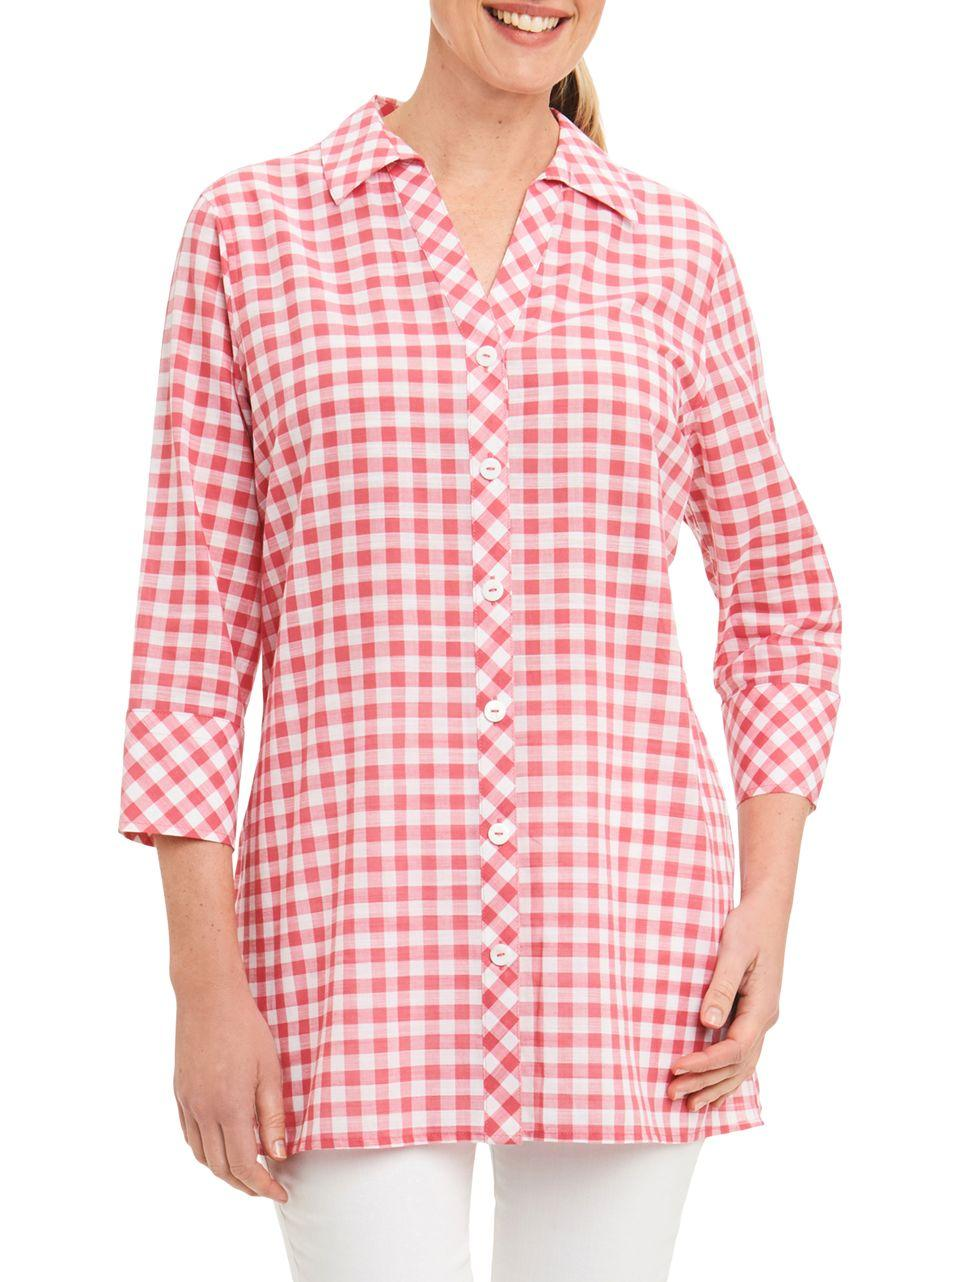 Lyst Foxcroft Cotton Check Shirt In Pink